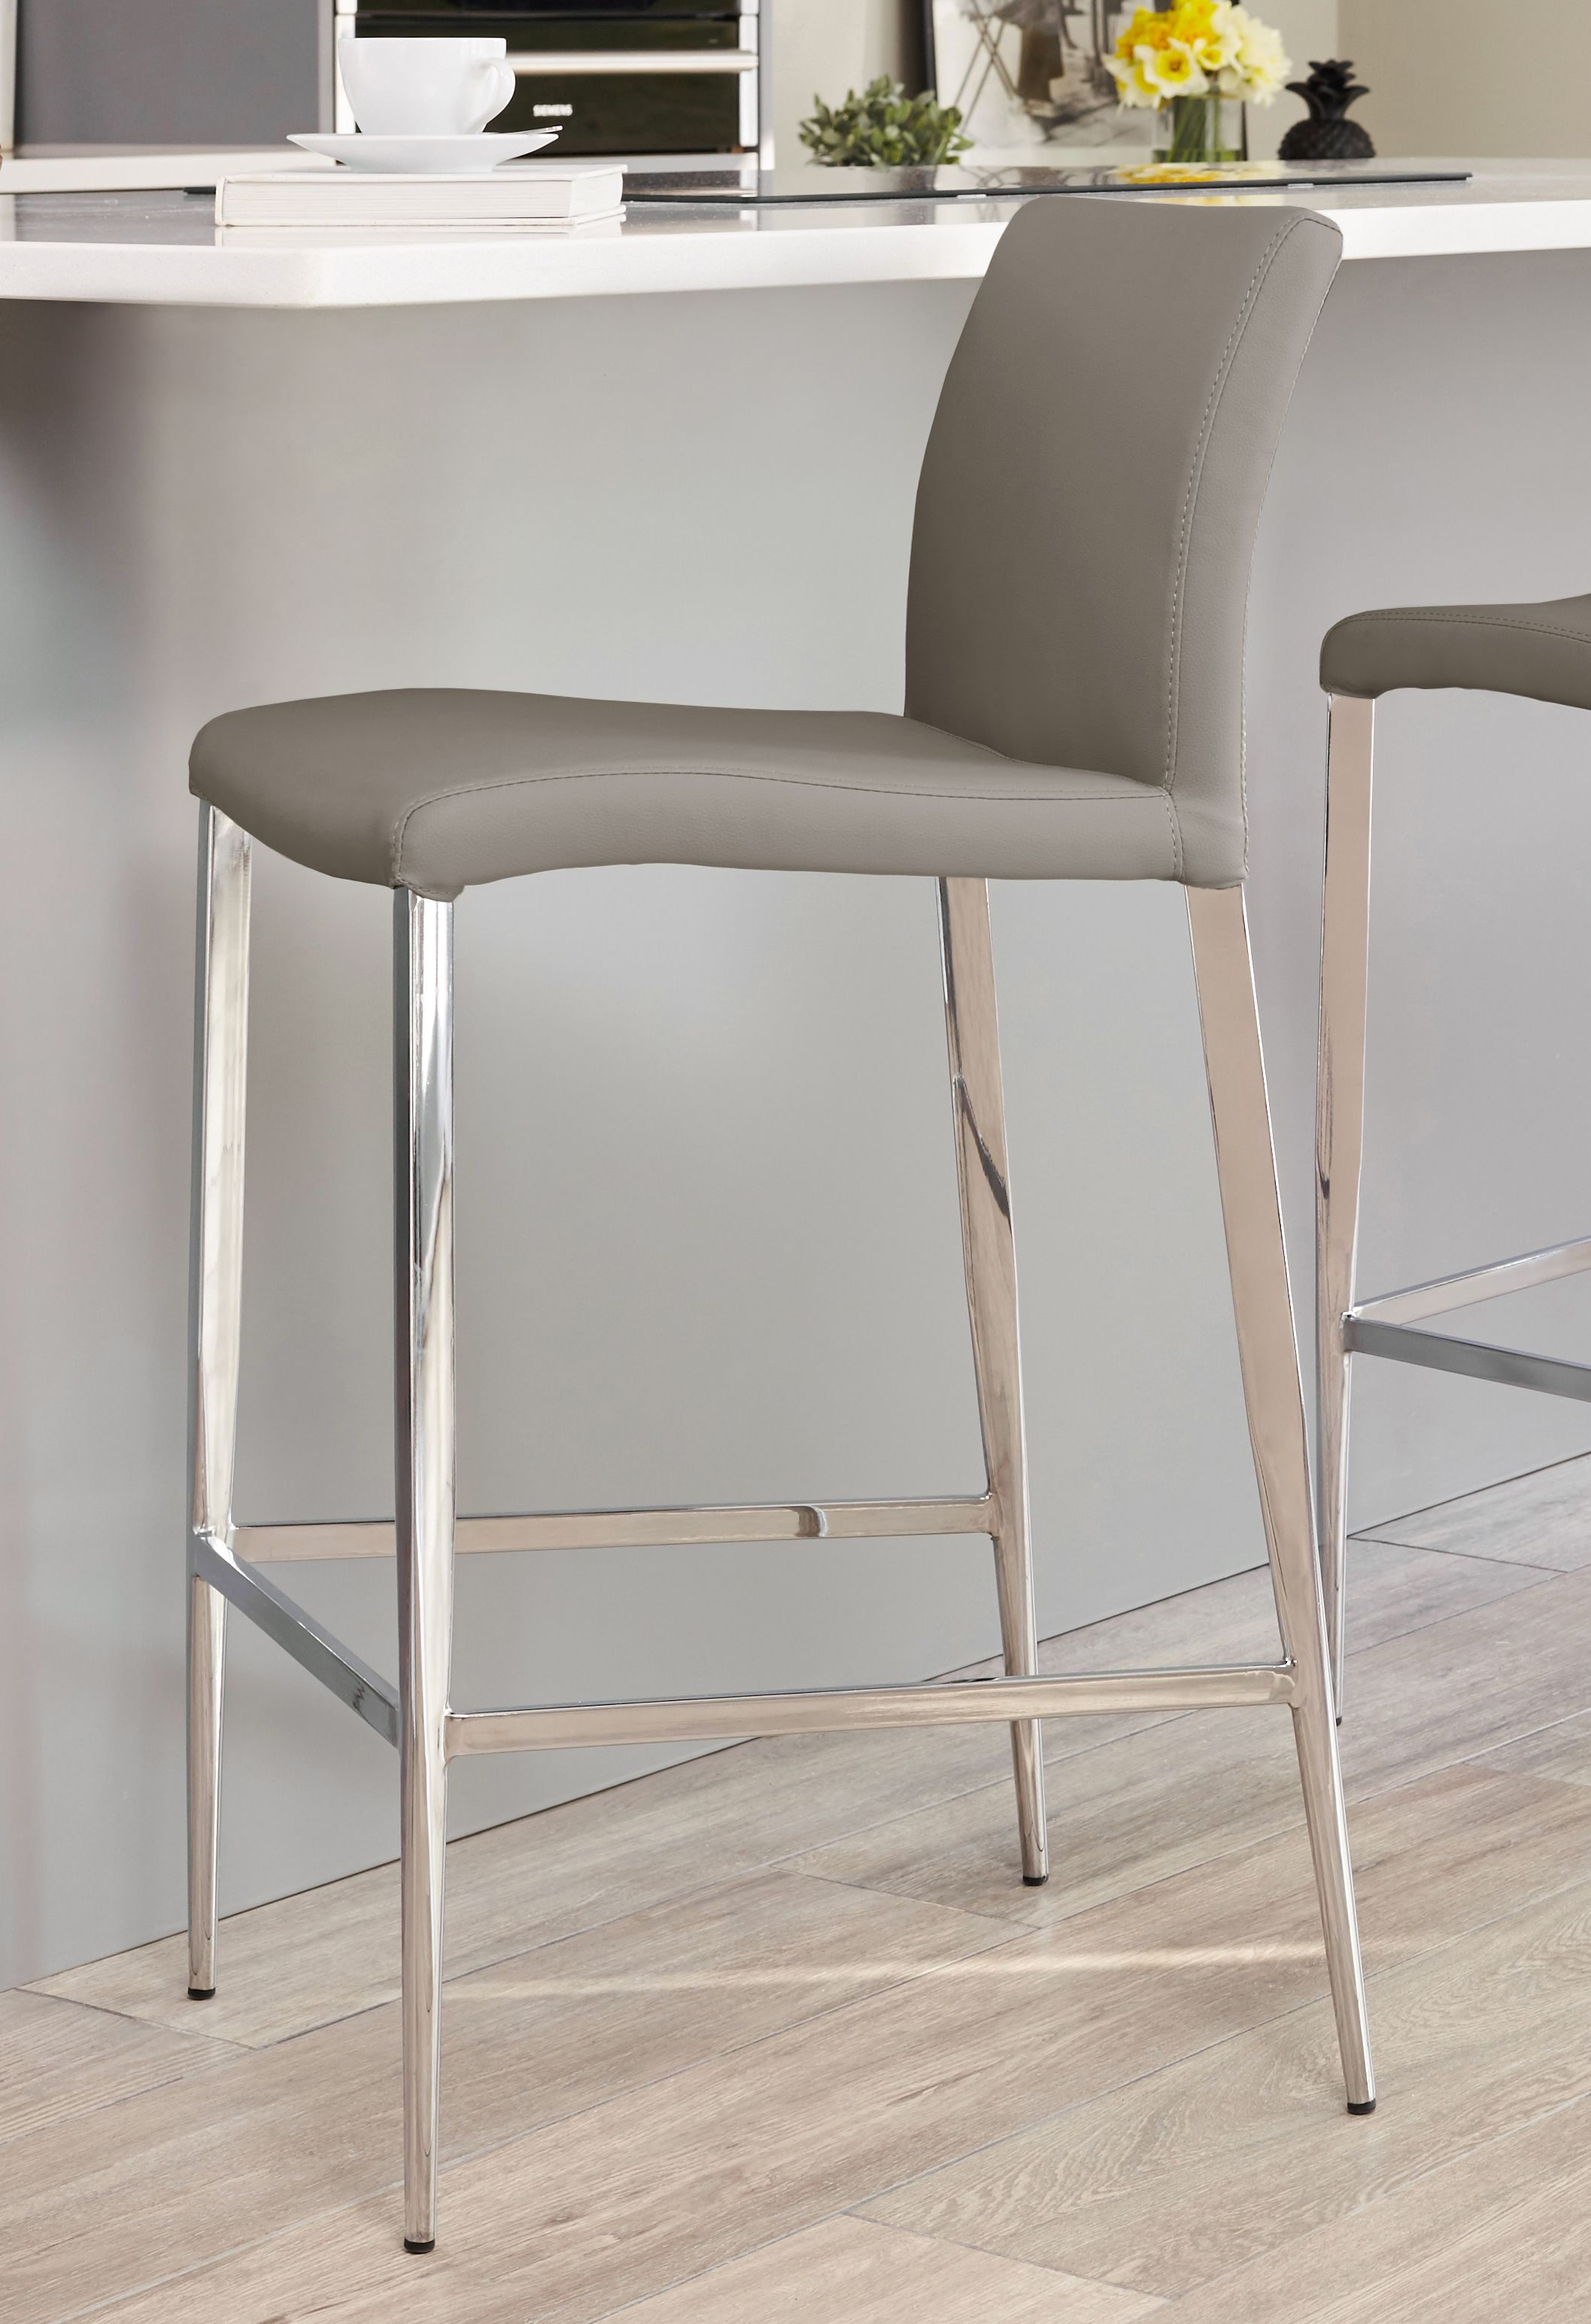 Elise Bar Stool Modern Bar Stools Grey Bar Stools Contemporary